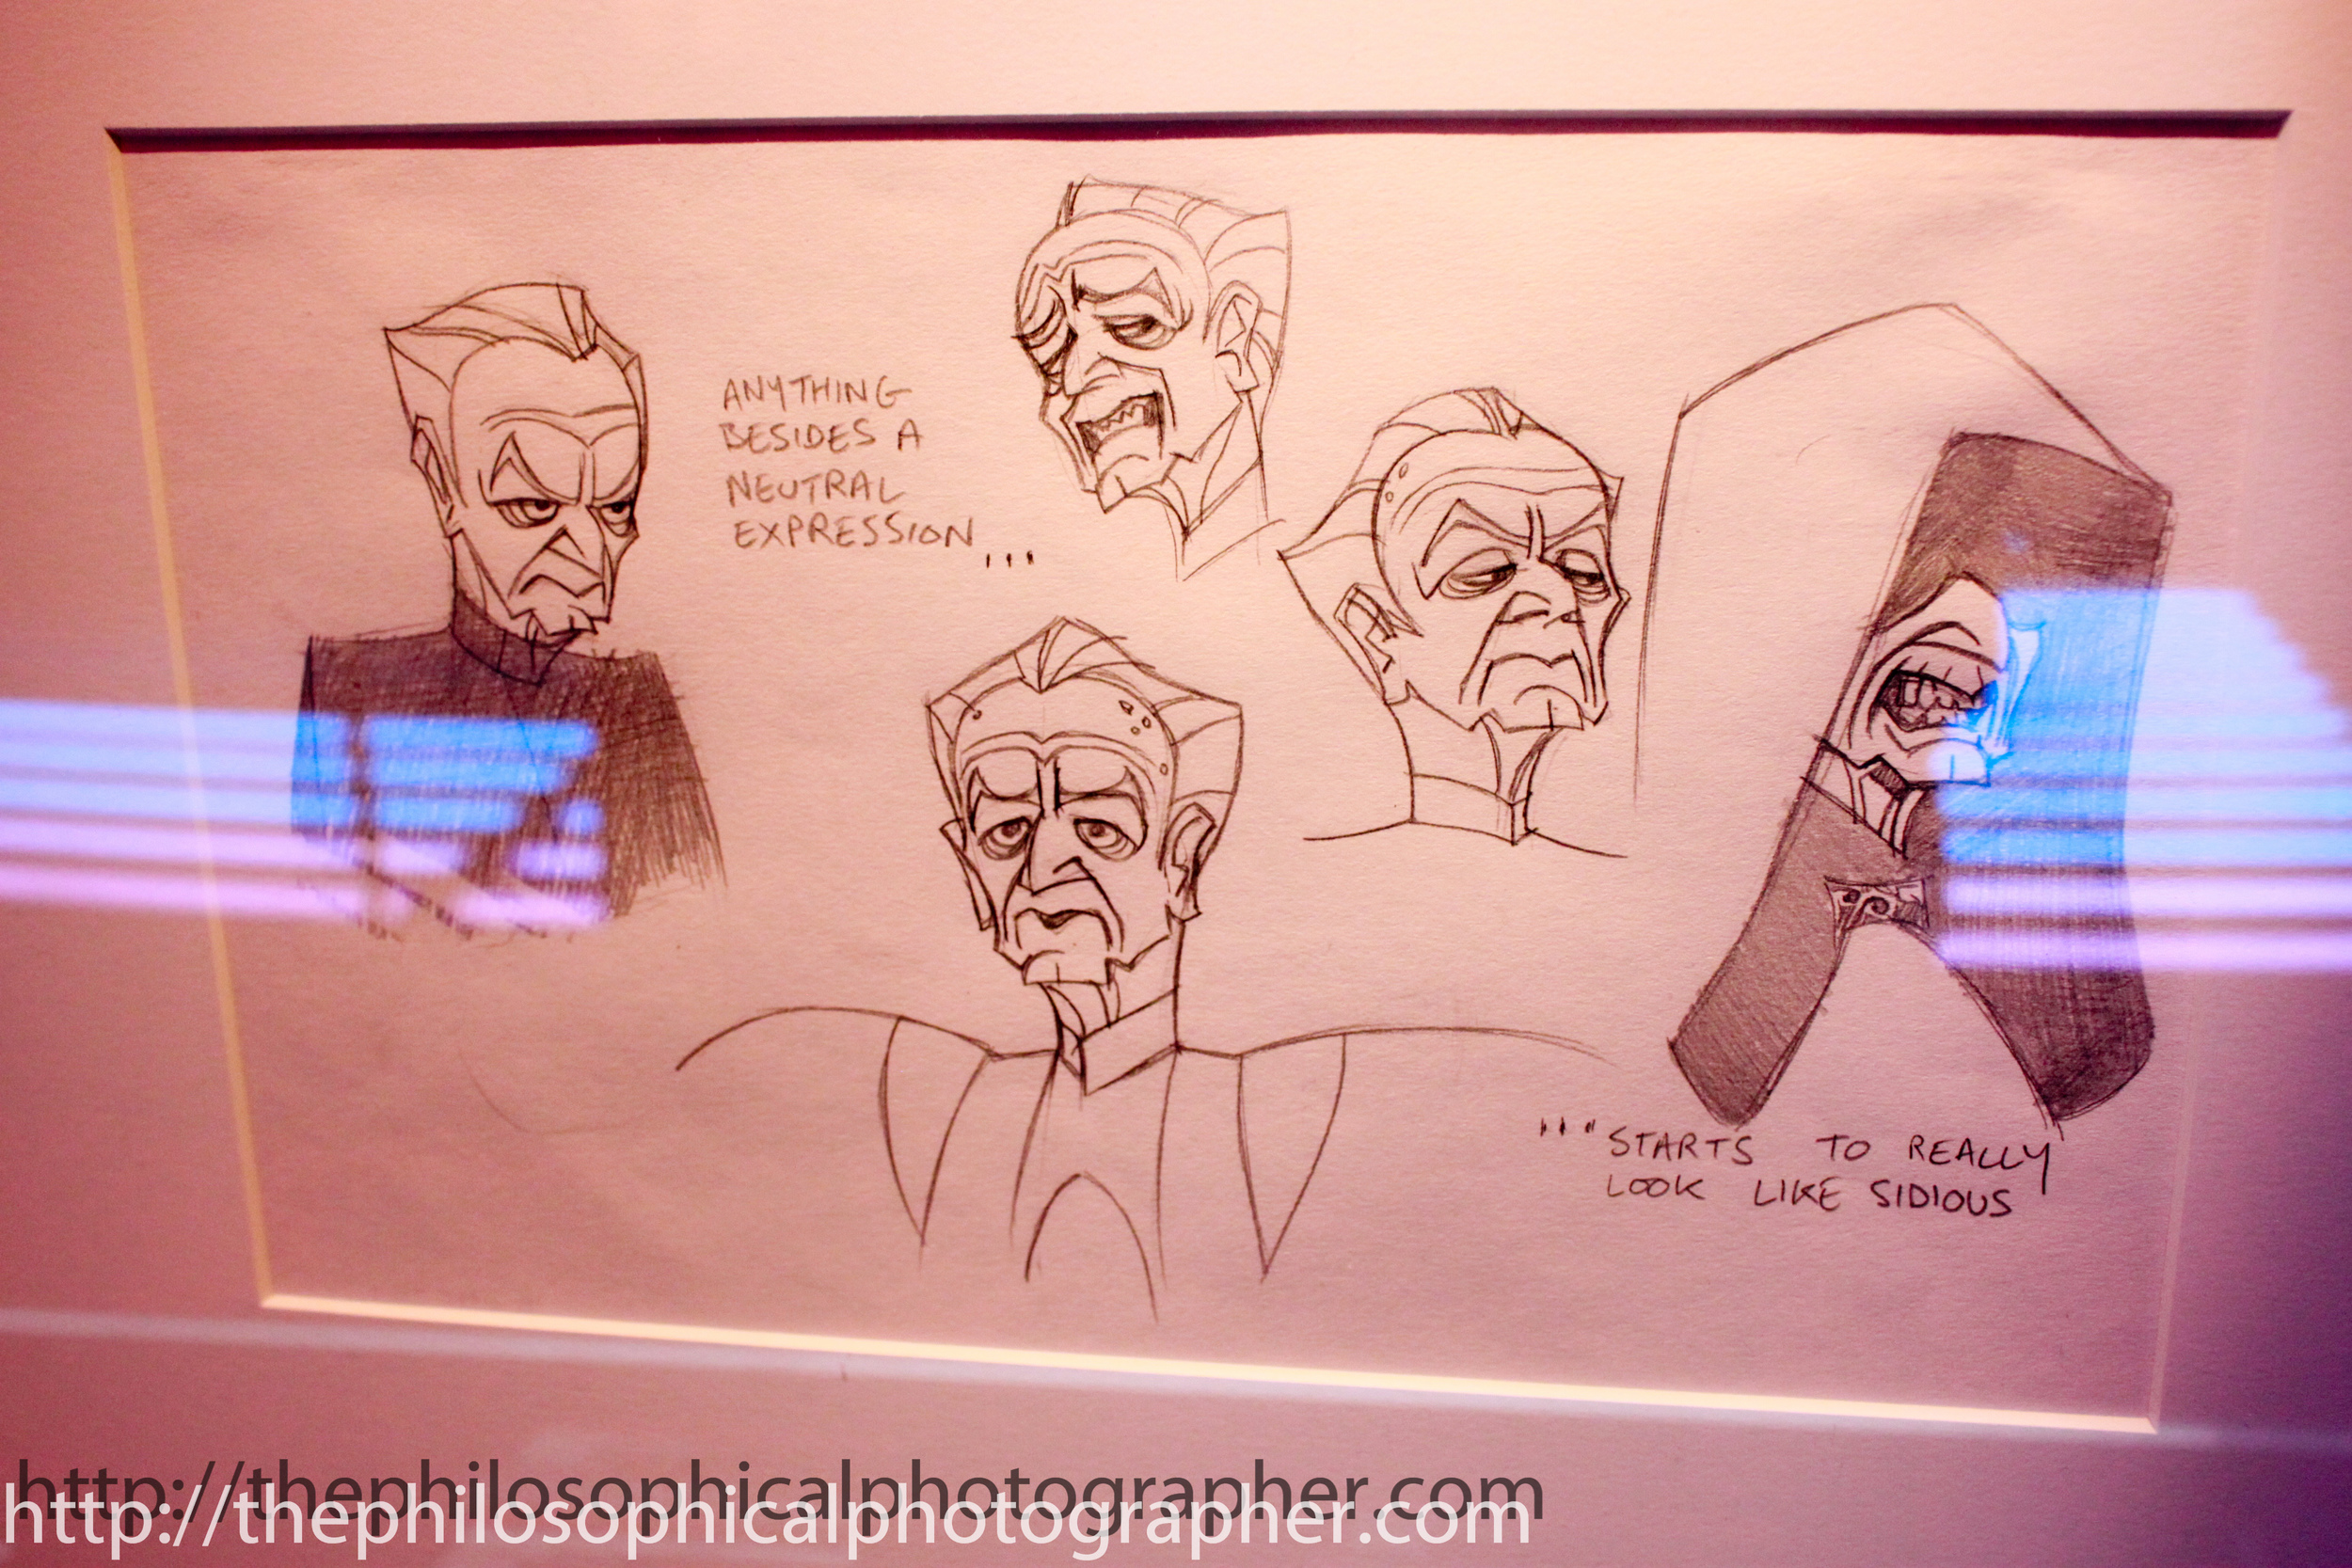 Palpatine's Facial Expressions